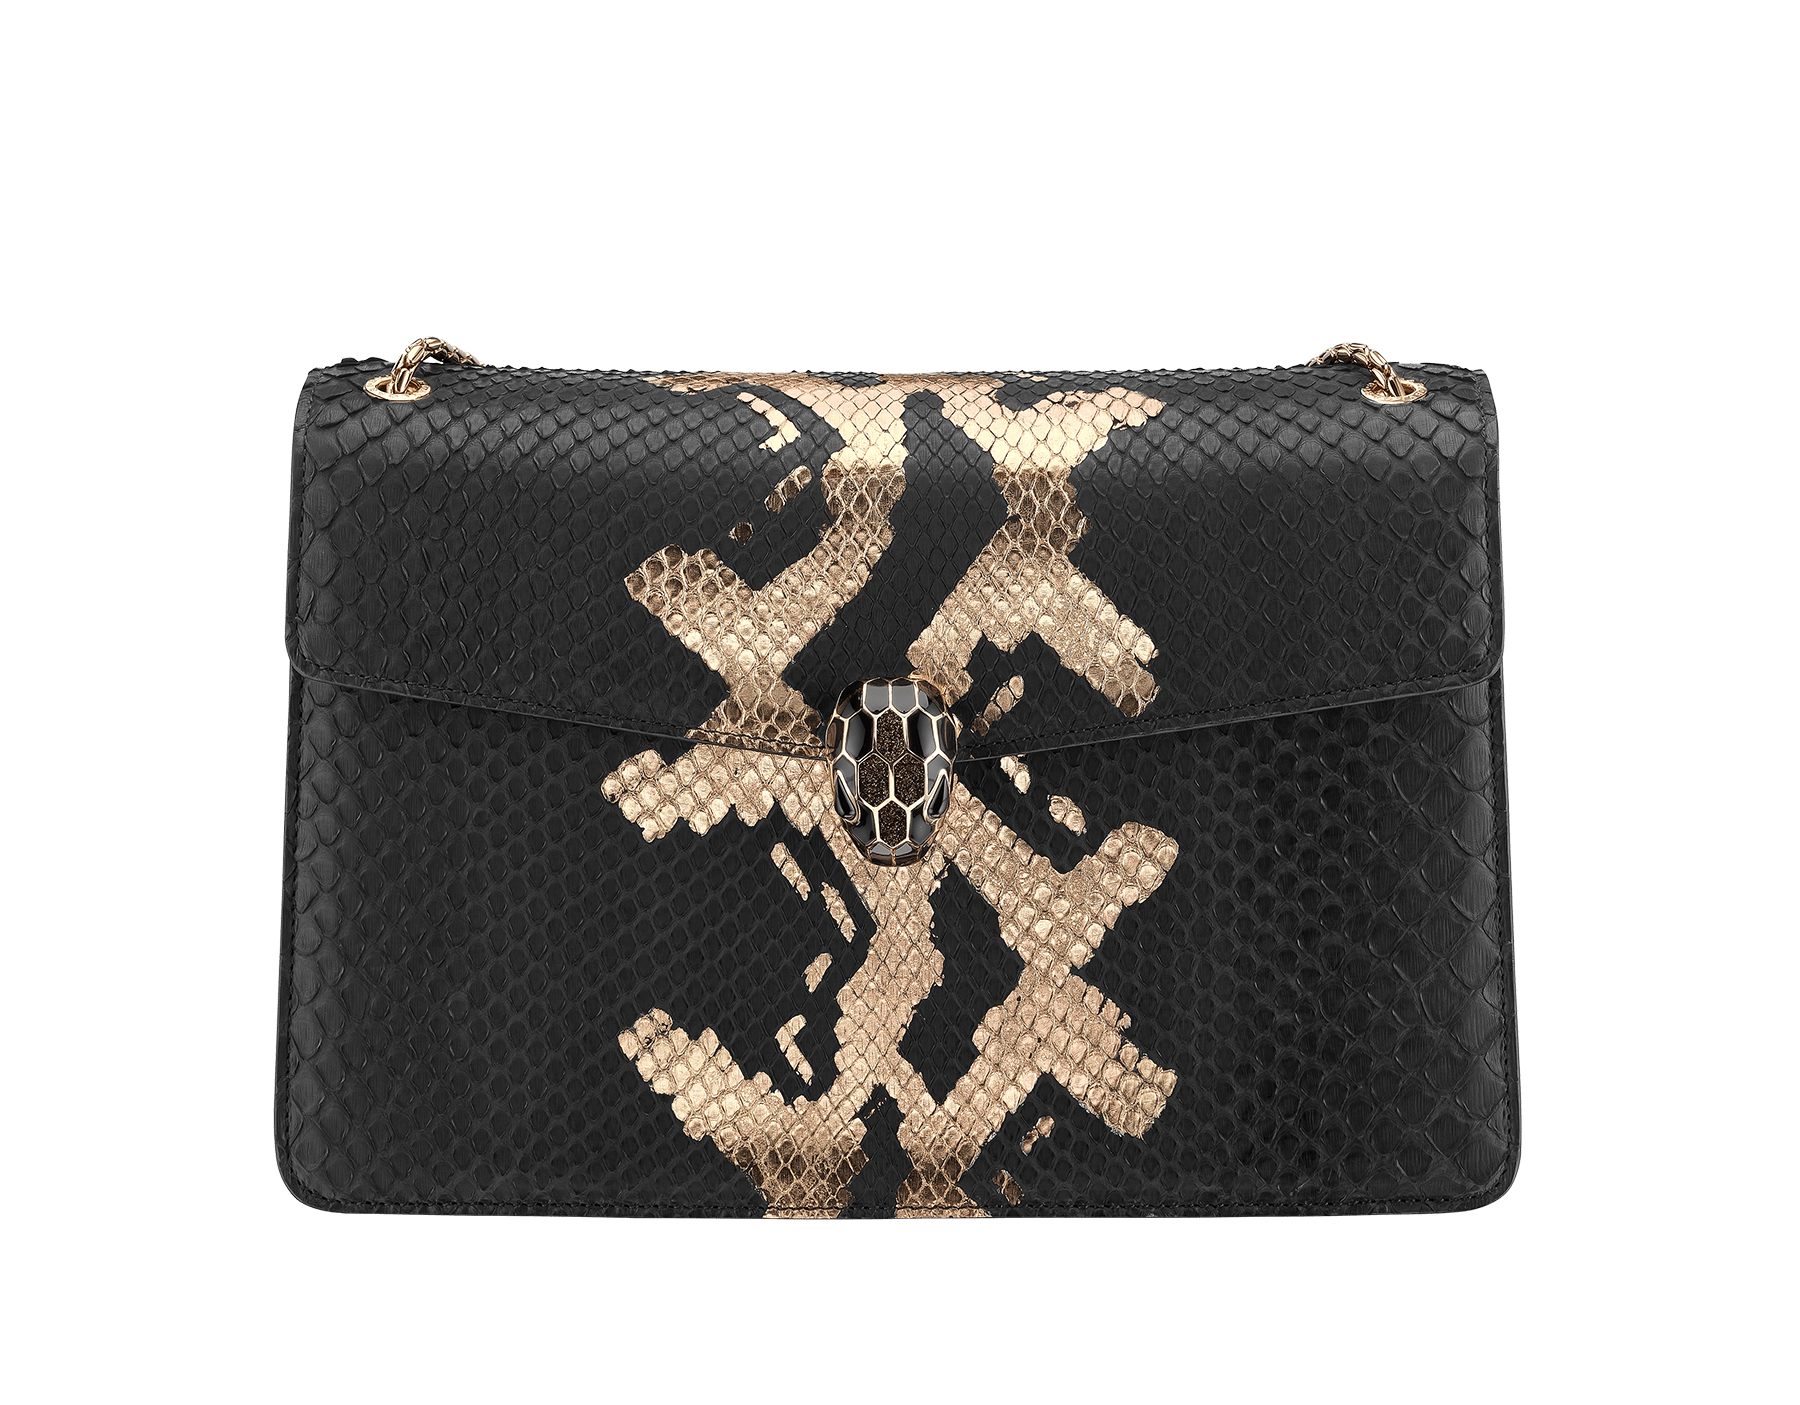 """Serpenti Forever"" shoulder bag in black and antique bronze Mottled Gold python skin. Iconic snakehead closure in light rose gold plated brass enriched with black and glitter bronze enamel and black onyx eyes 287318 image 1"